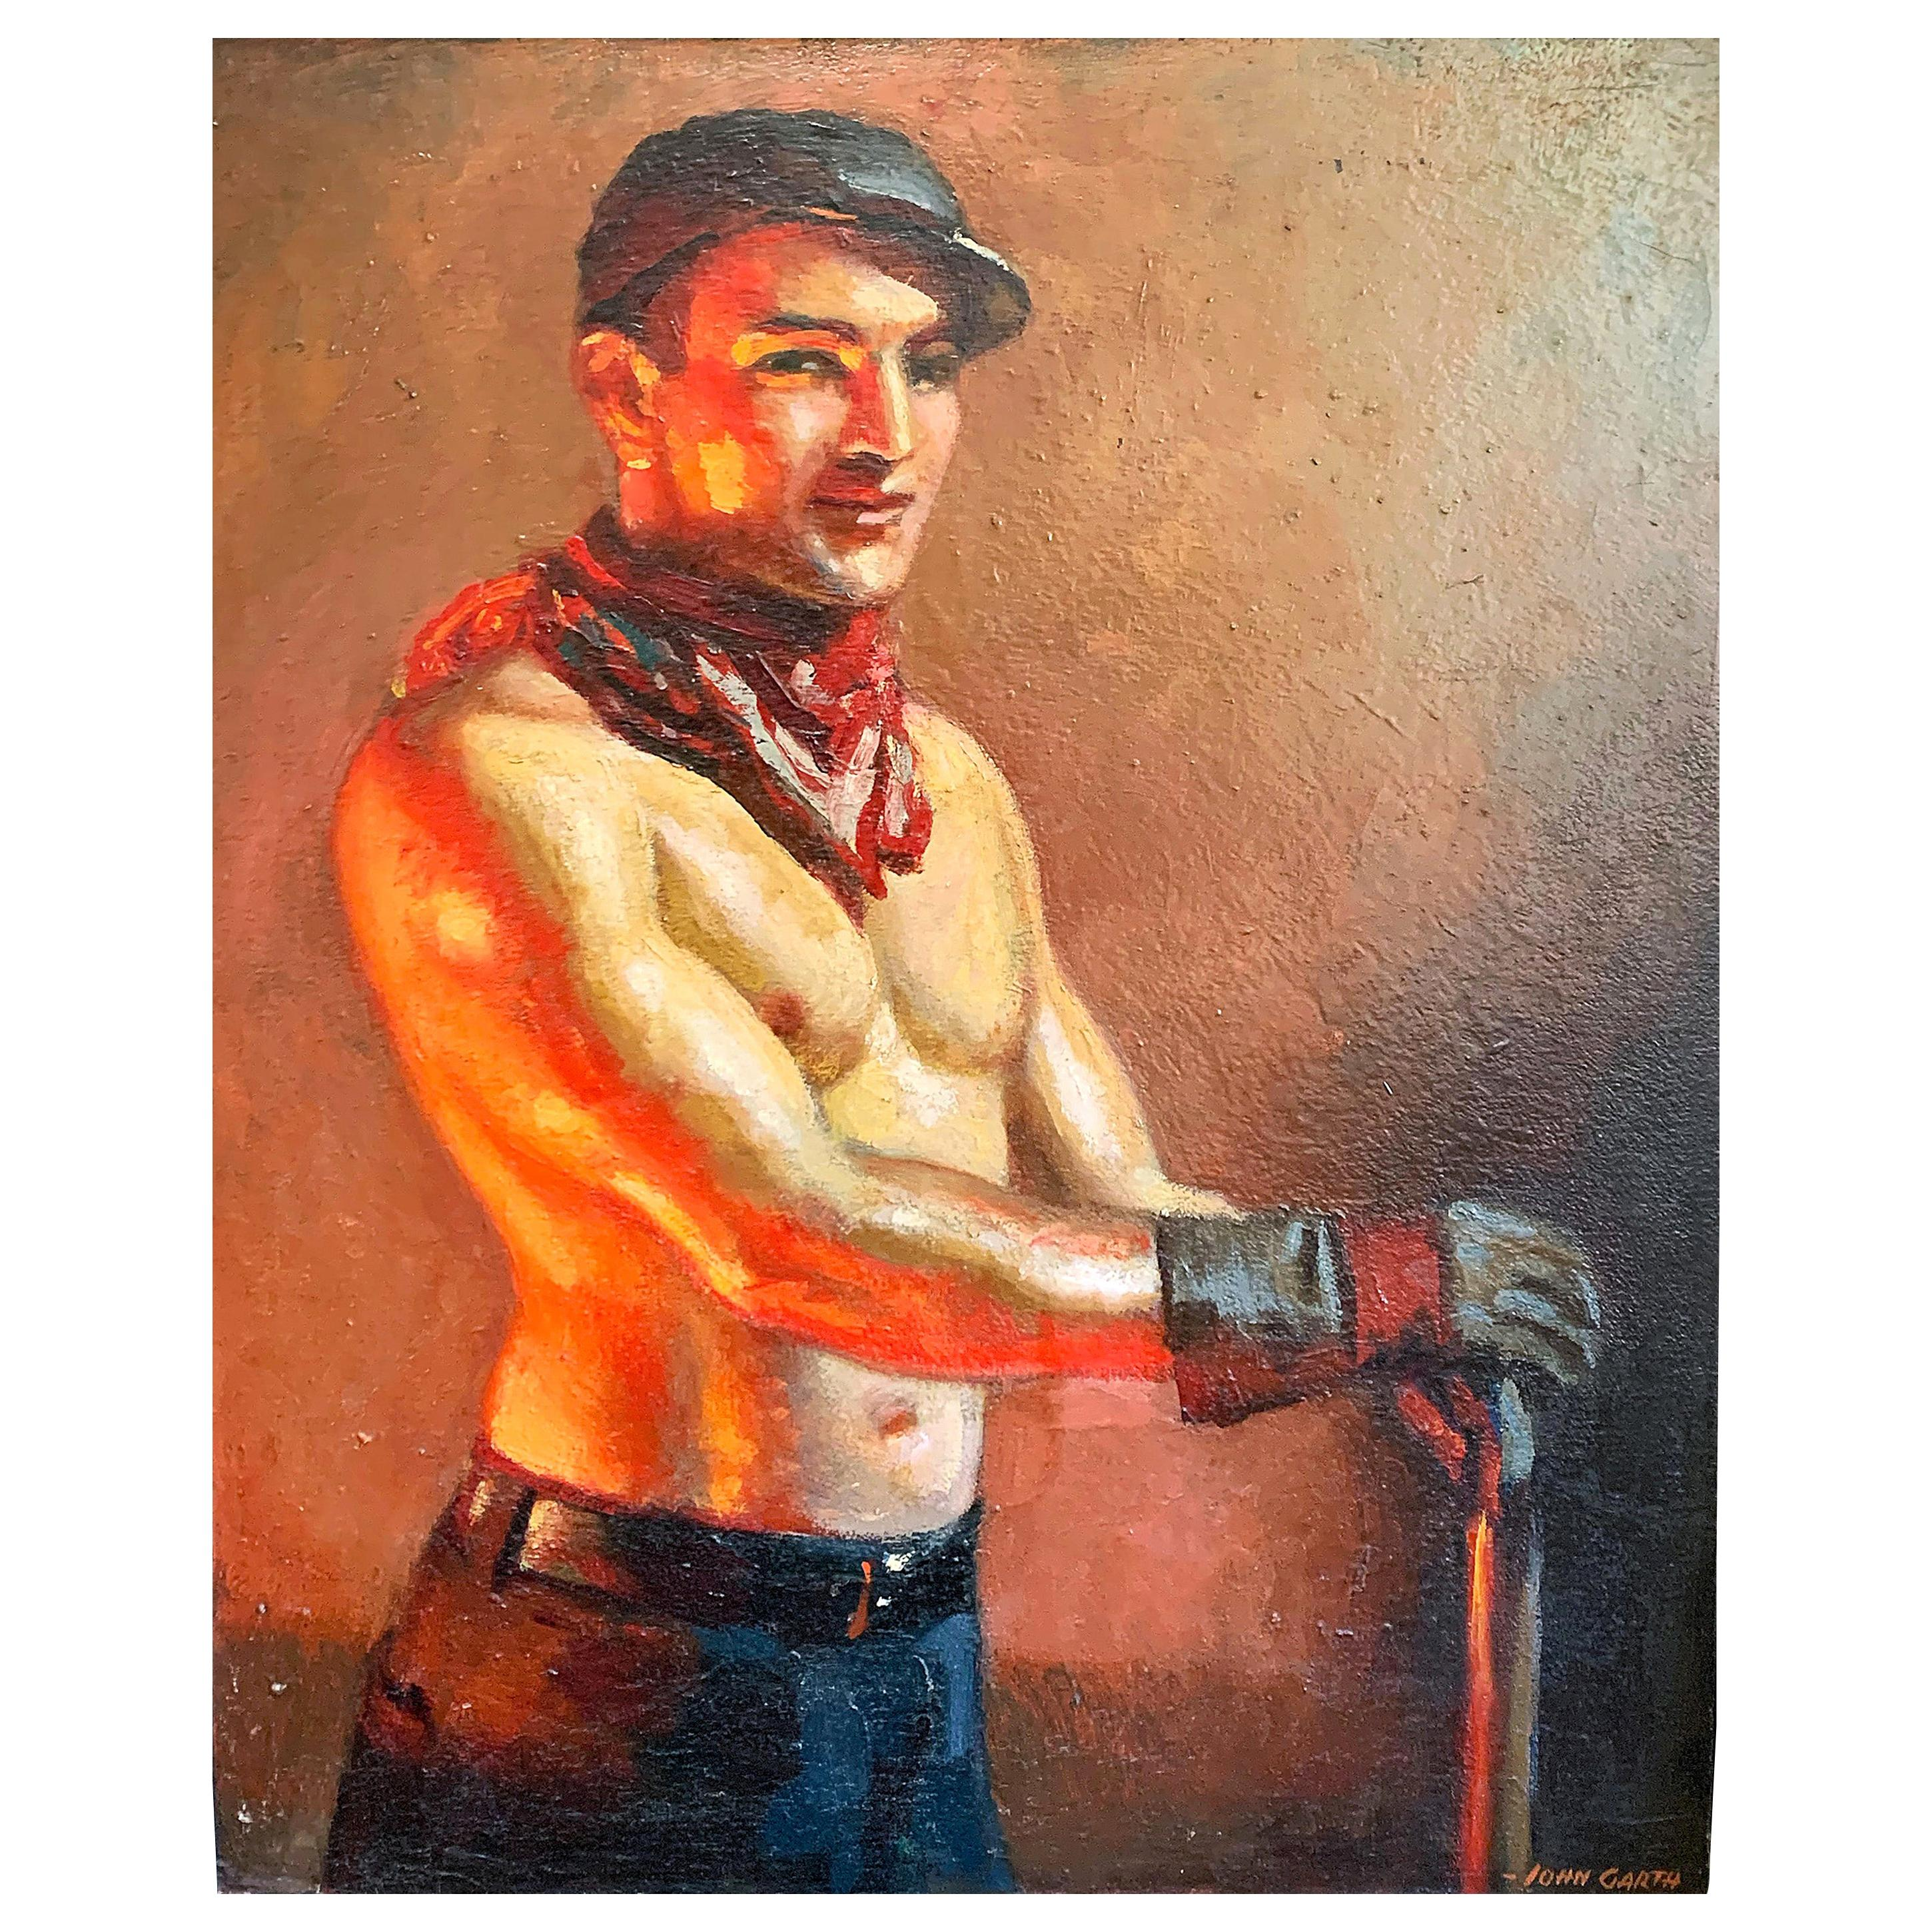 """""""Ironworker,"""" Rare Example of 1920s Worker Portrait by John Garth, 1920s"""